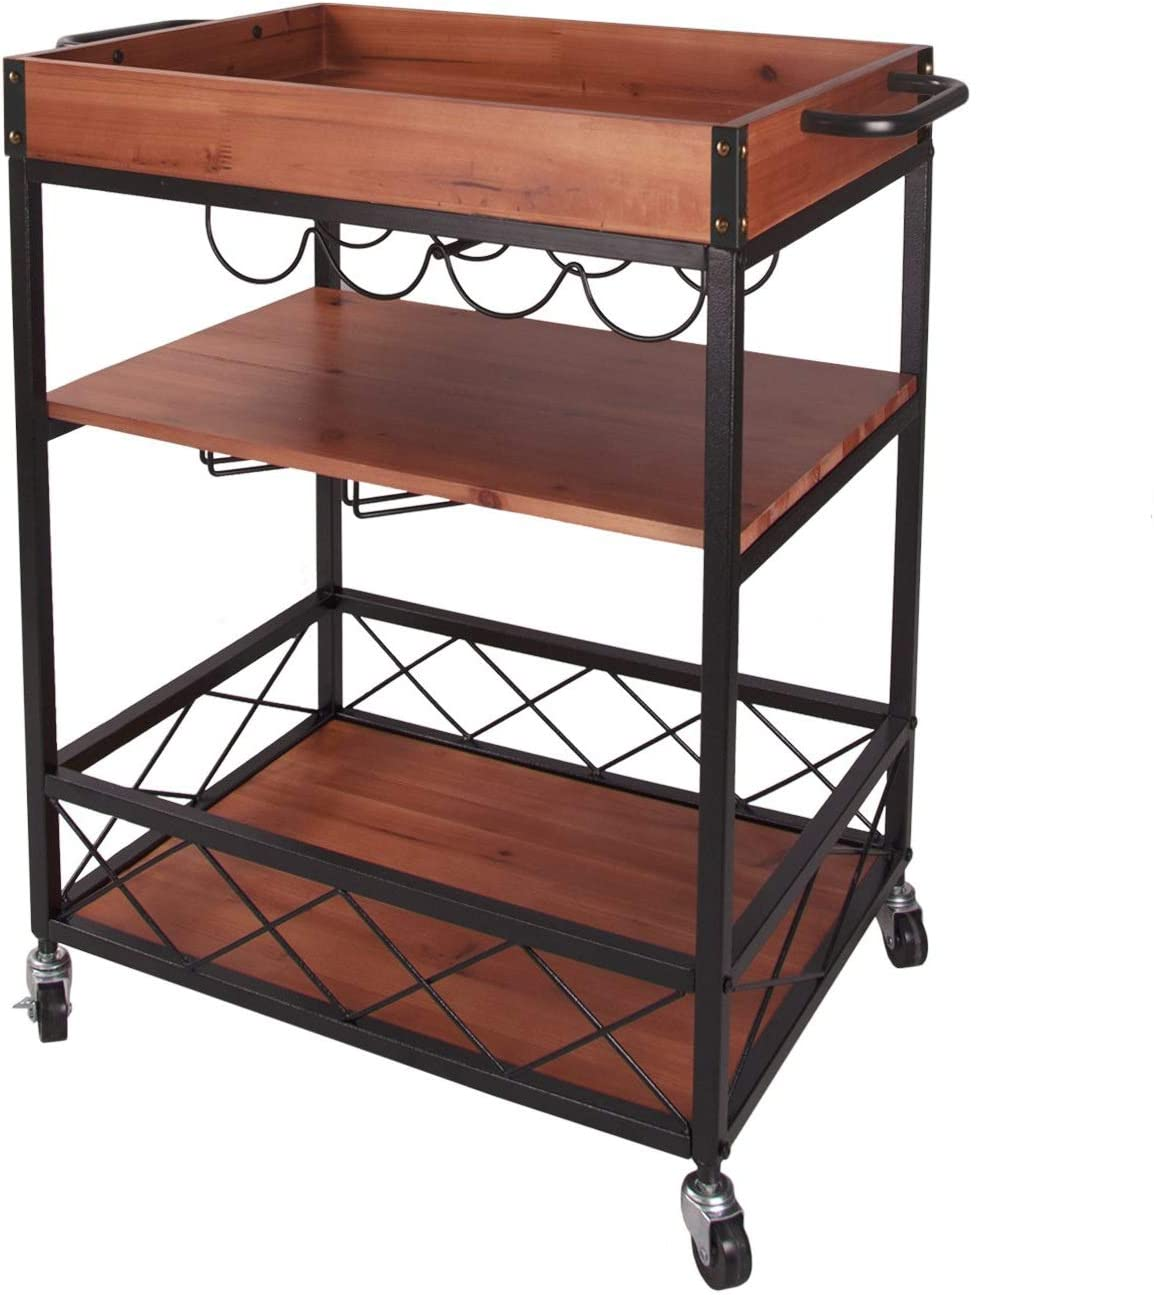 Kitchen Bar Serving Cart Rolling Utility Storage Trolley 3 Tier Shelves